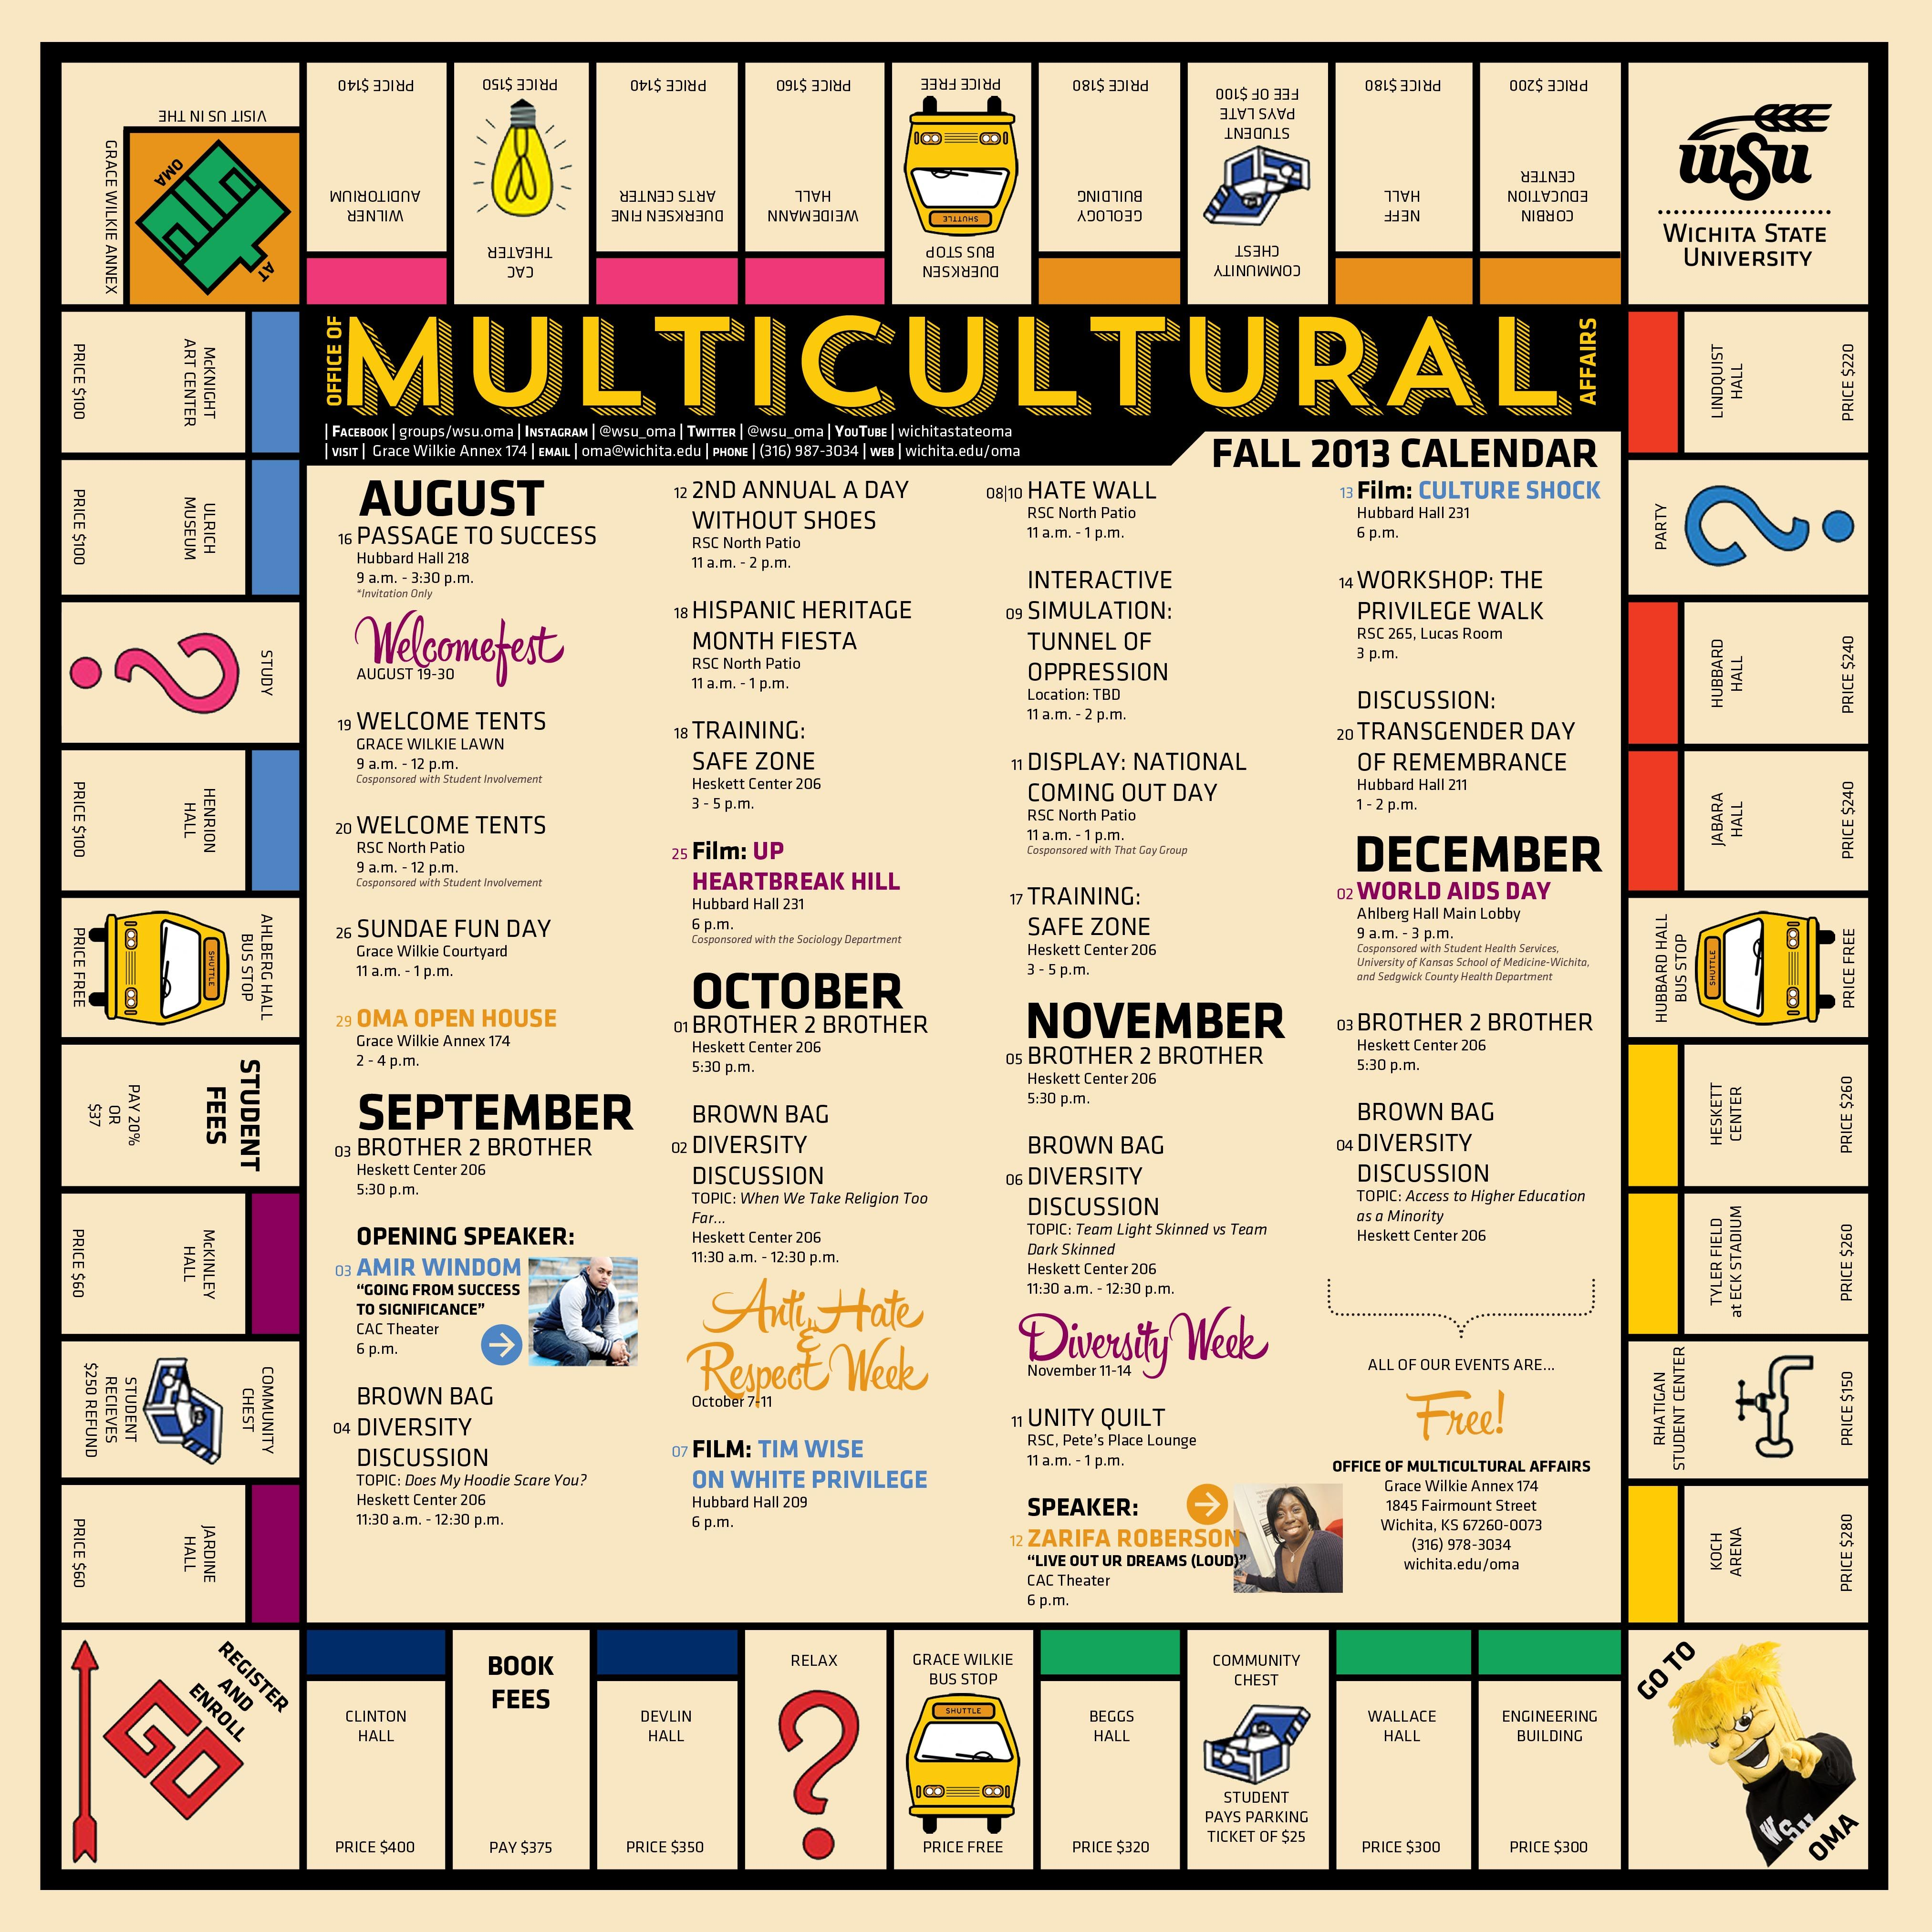 cultural economic and physical diversity of That means we understand that people from different cultural, racial, and ethnic groups have different values, beliefs ethnicity, gender, age, religion, sexual orientation, physical ability, or socioeconomic status cultural sensitivity cultural diversity.